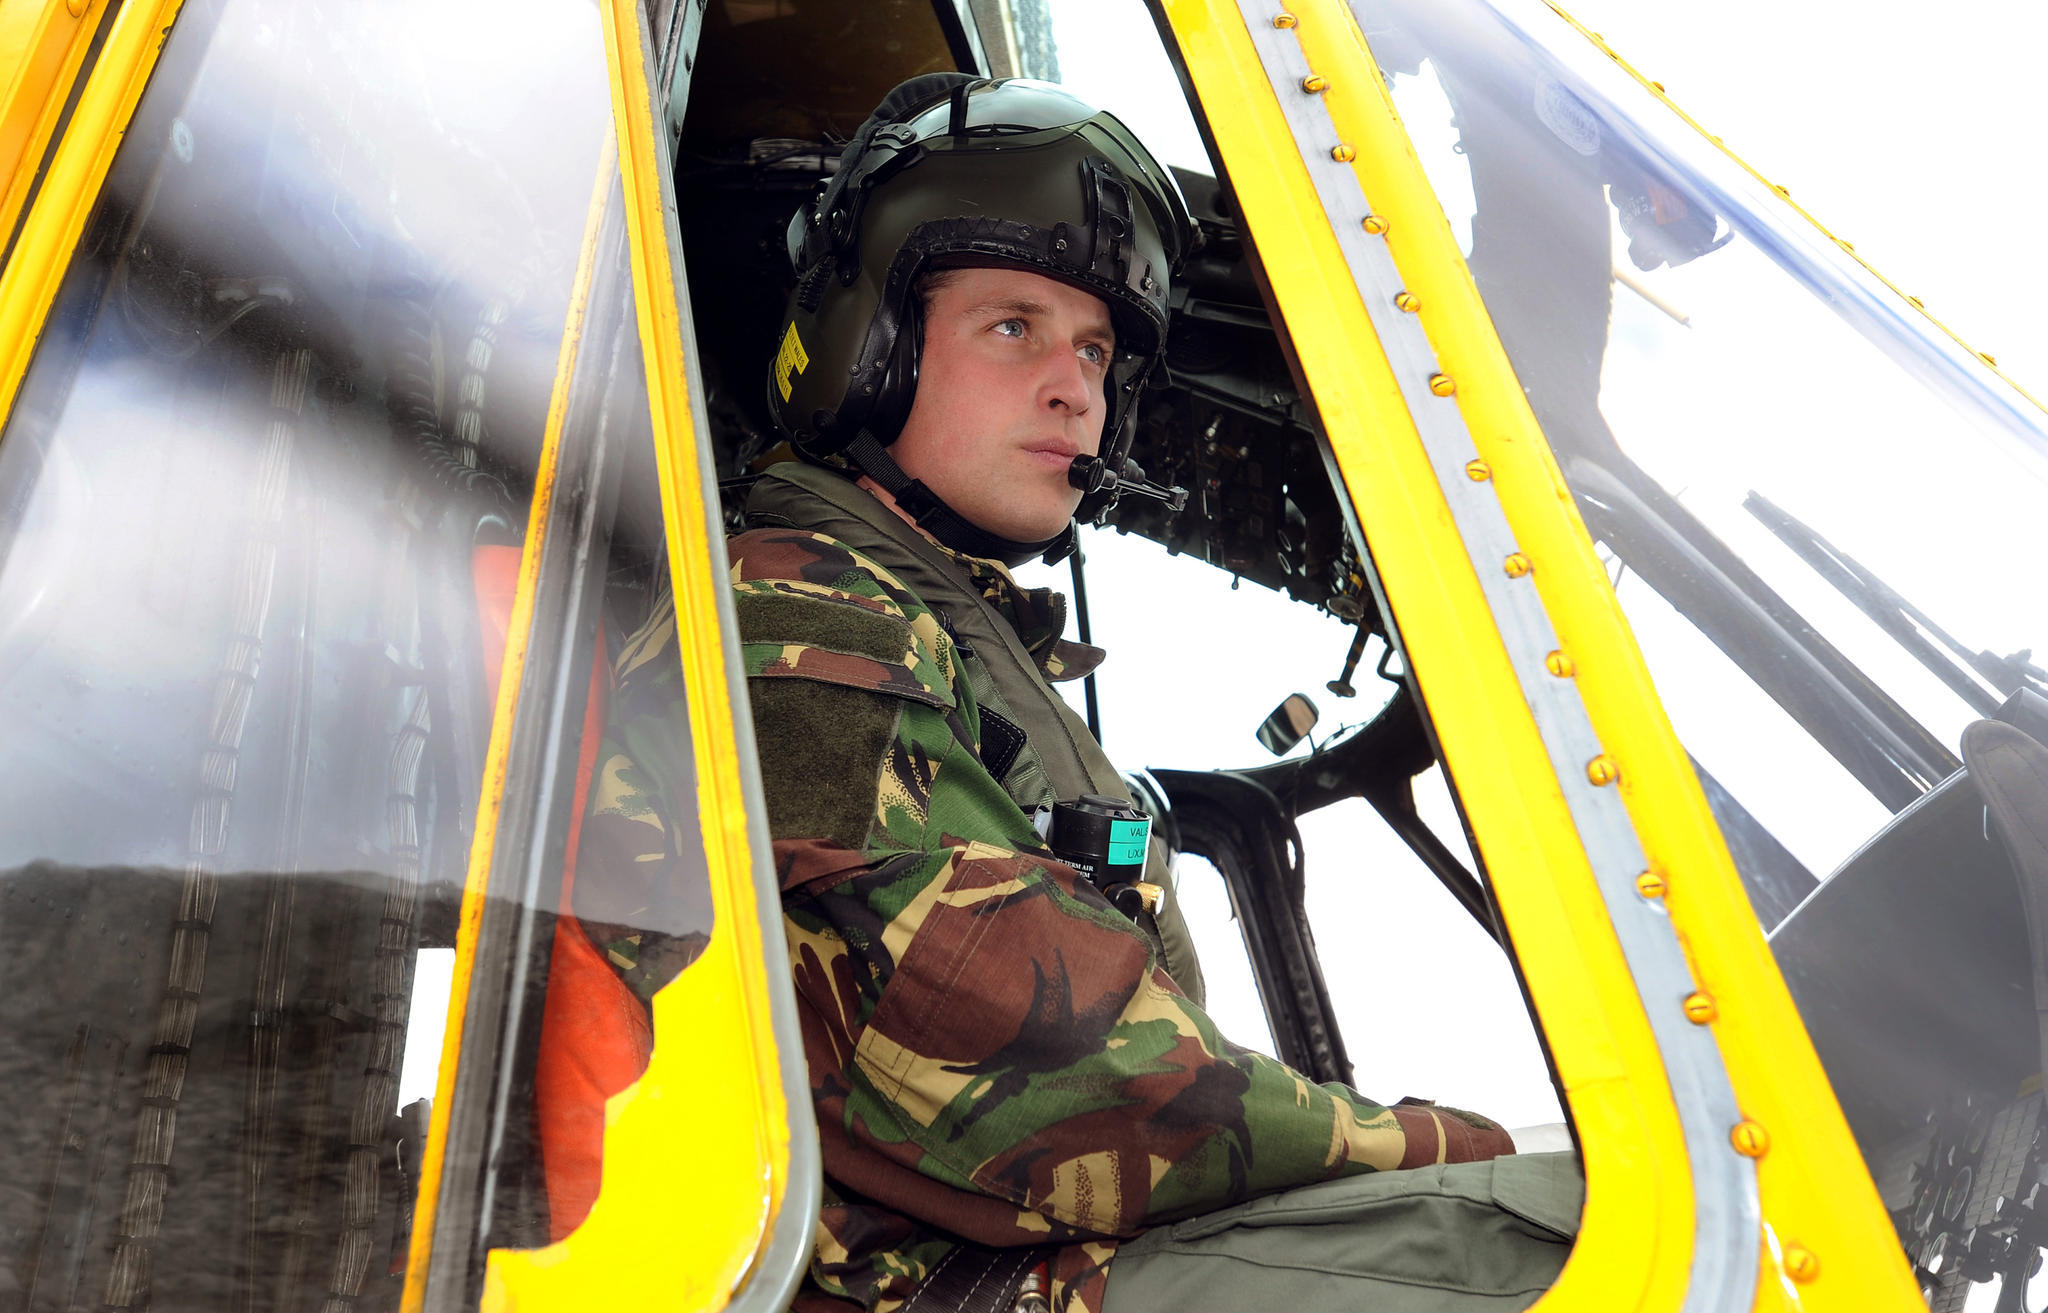 Prinz William im Helikopter-Einsatz für die Royal Air Force.